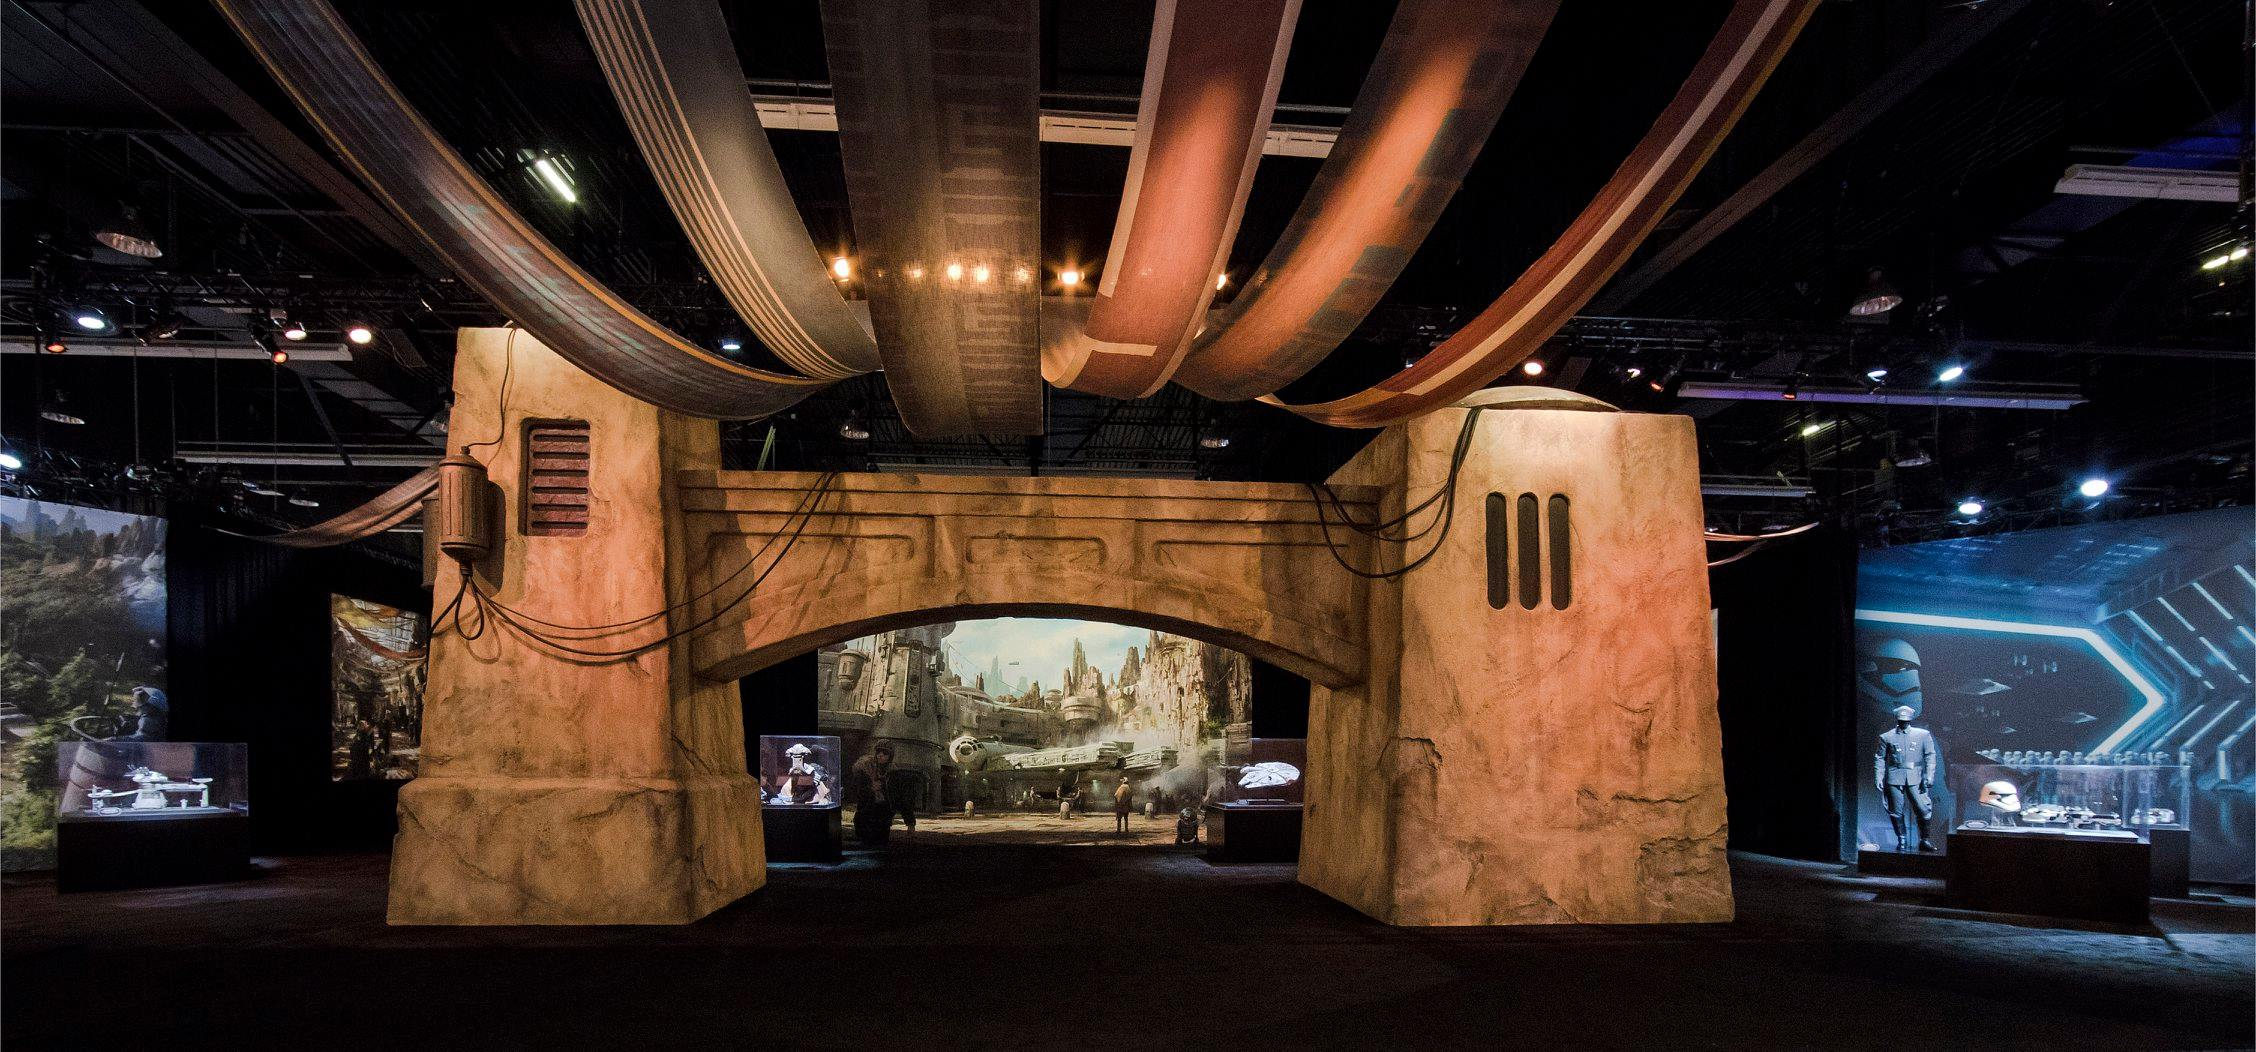 disney-reveals-incredibly-cool-full-star-wars-land-model-at-d23-expo5.jpeg